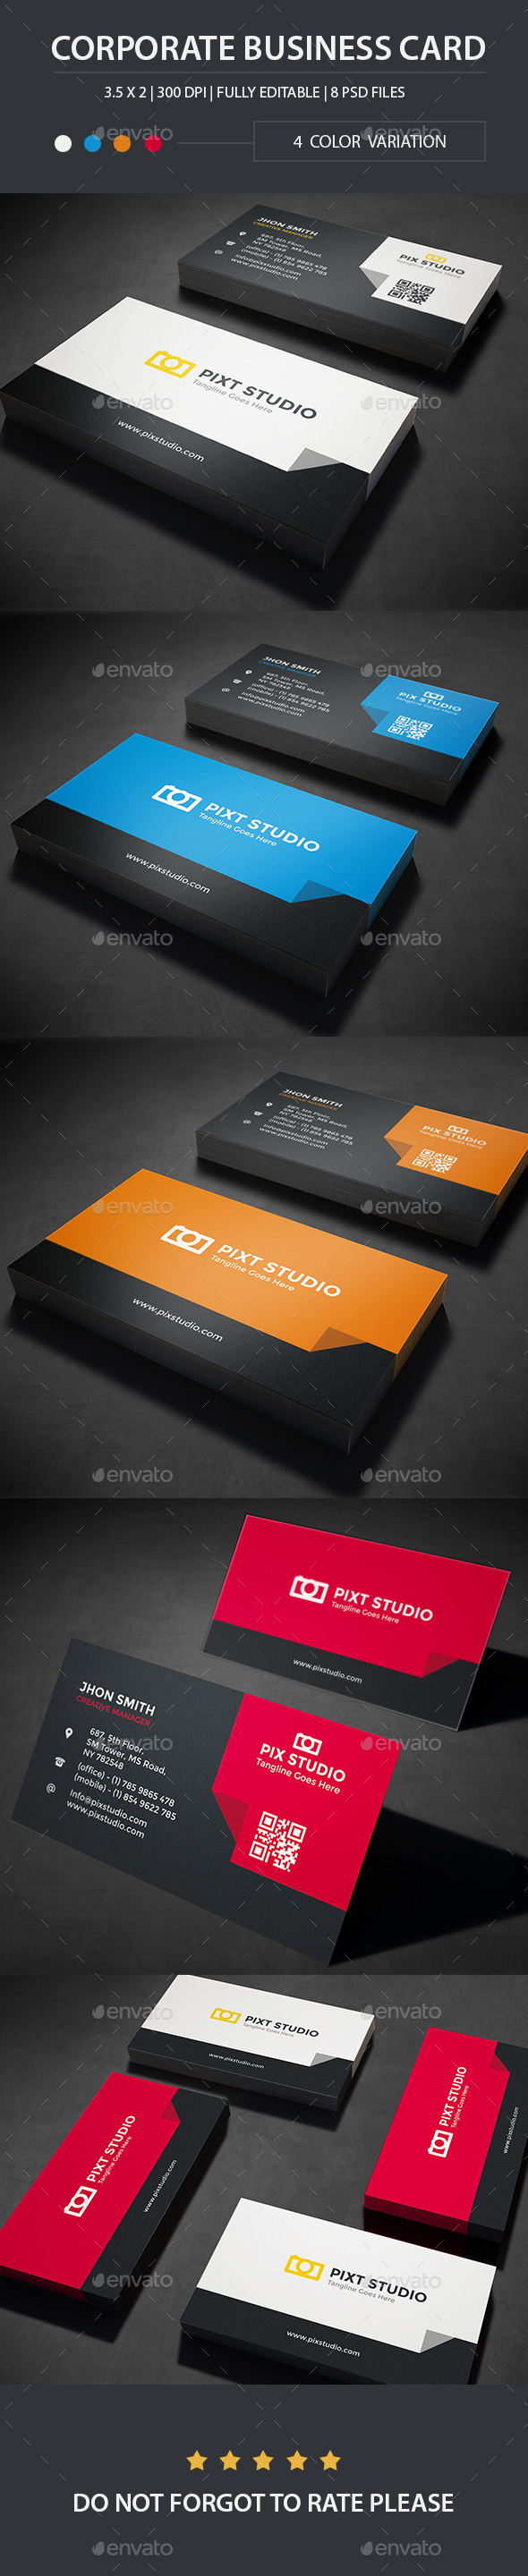 Corporate Business Card | Vol -001 - Business Cards Print Templates